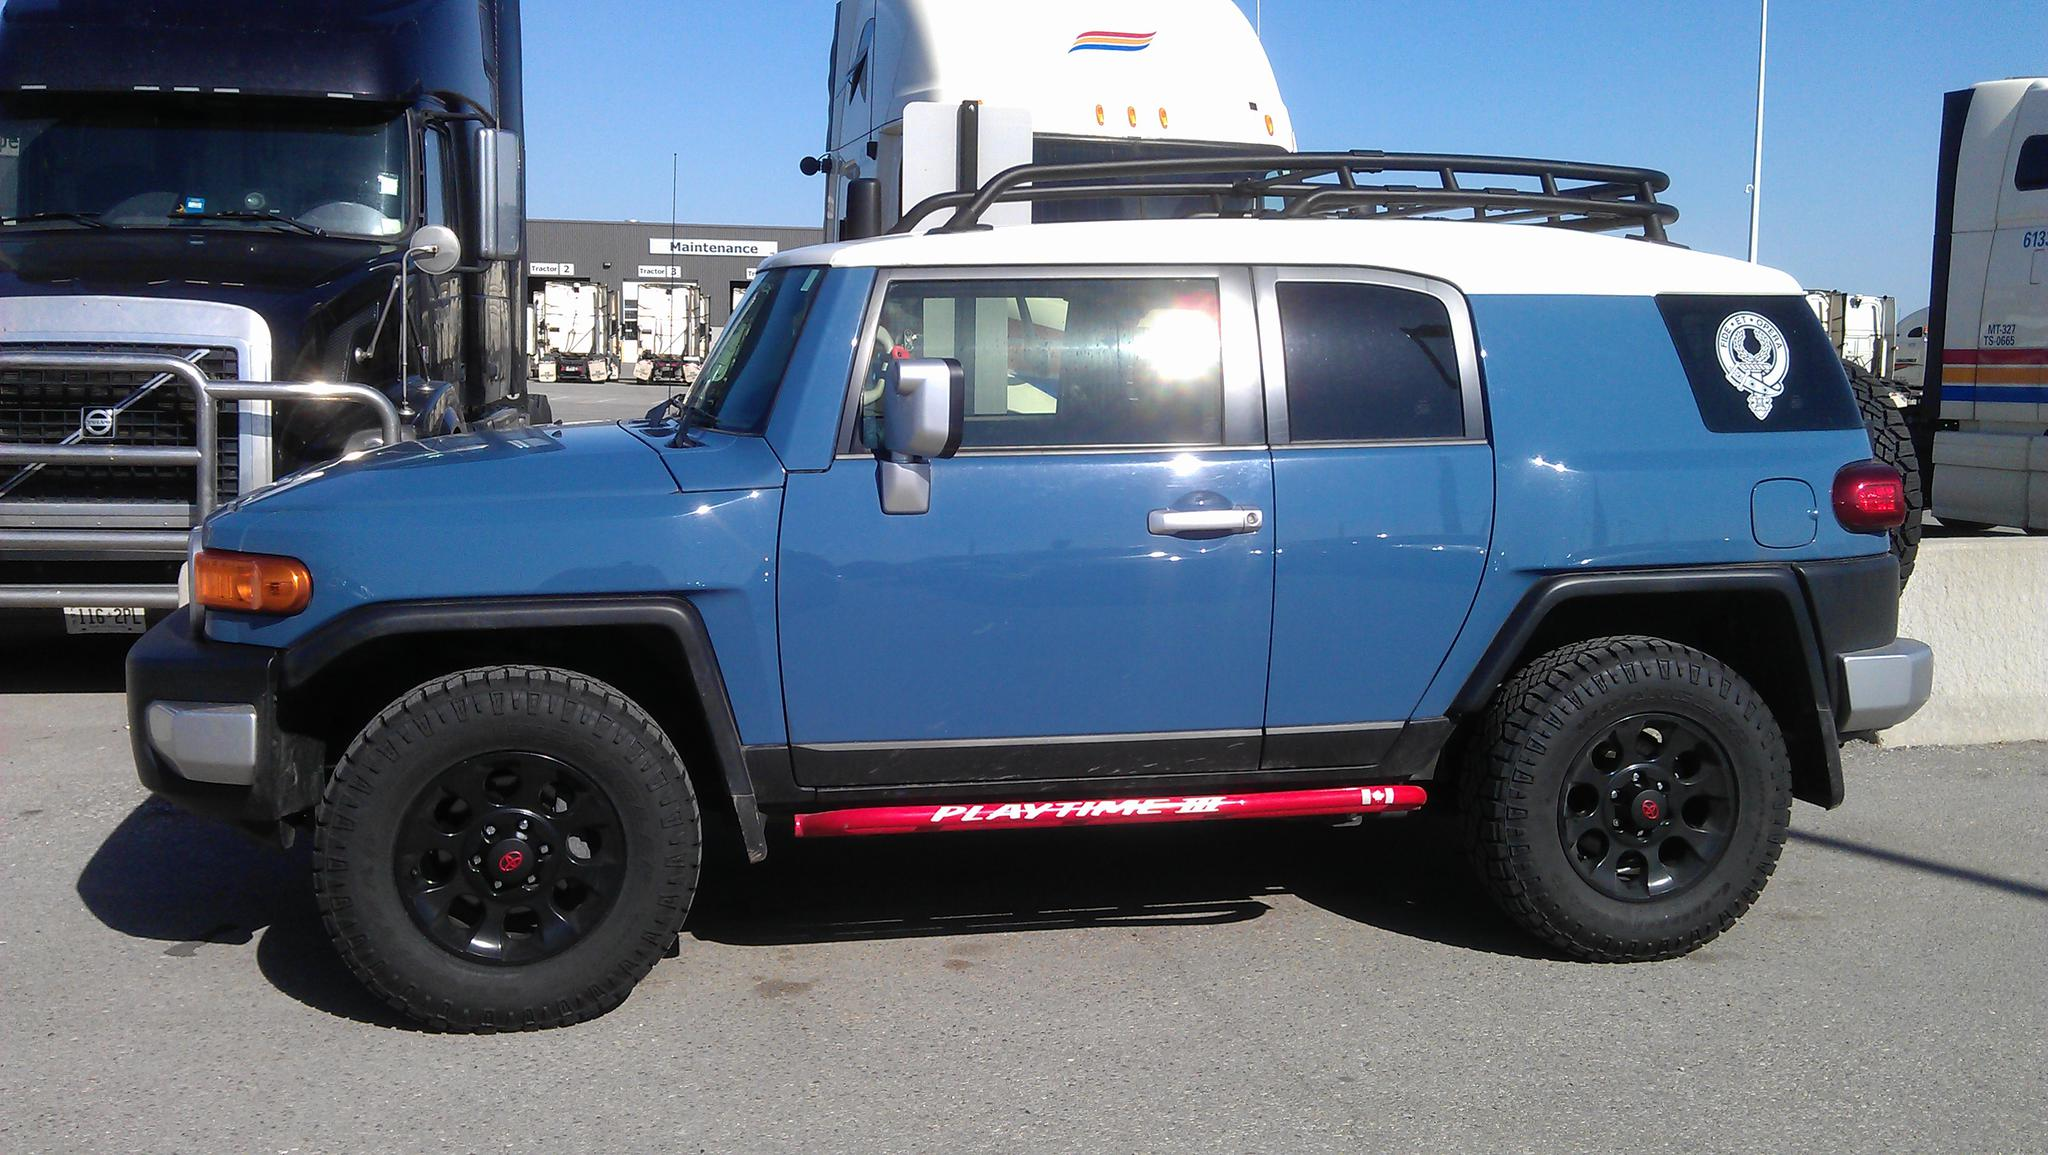 The Official Cavalry Blue FJ Photo Thread  Page 16  Toyota FJ